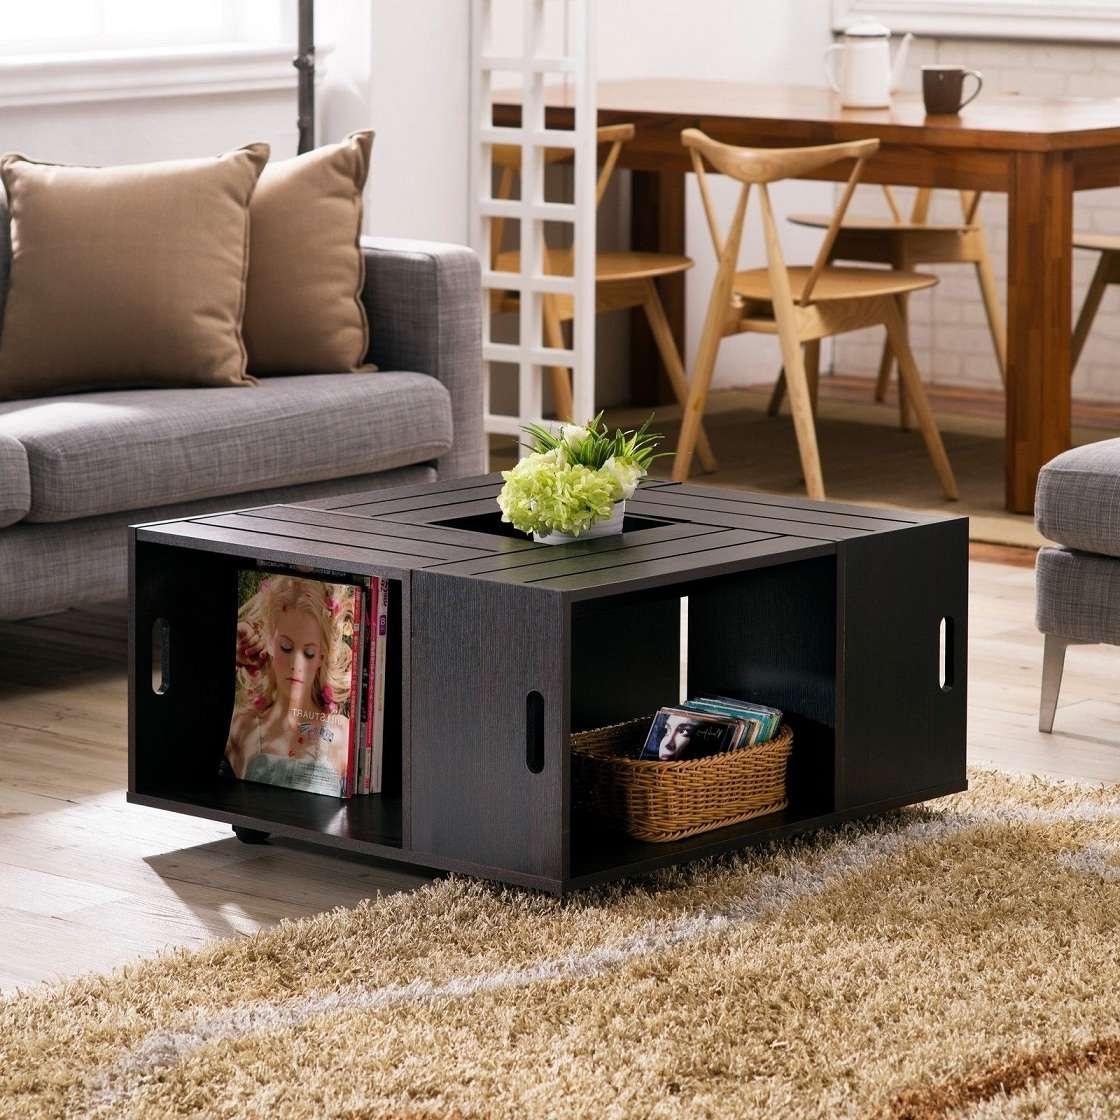 Interesting Decorative Of Square Coffee Tables With Storage – Tall In Well Known Round Coffee Tables With Storages (View 19 of 20)